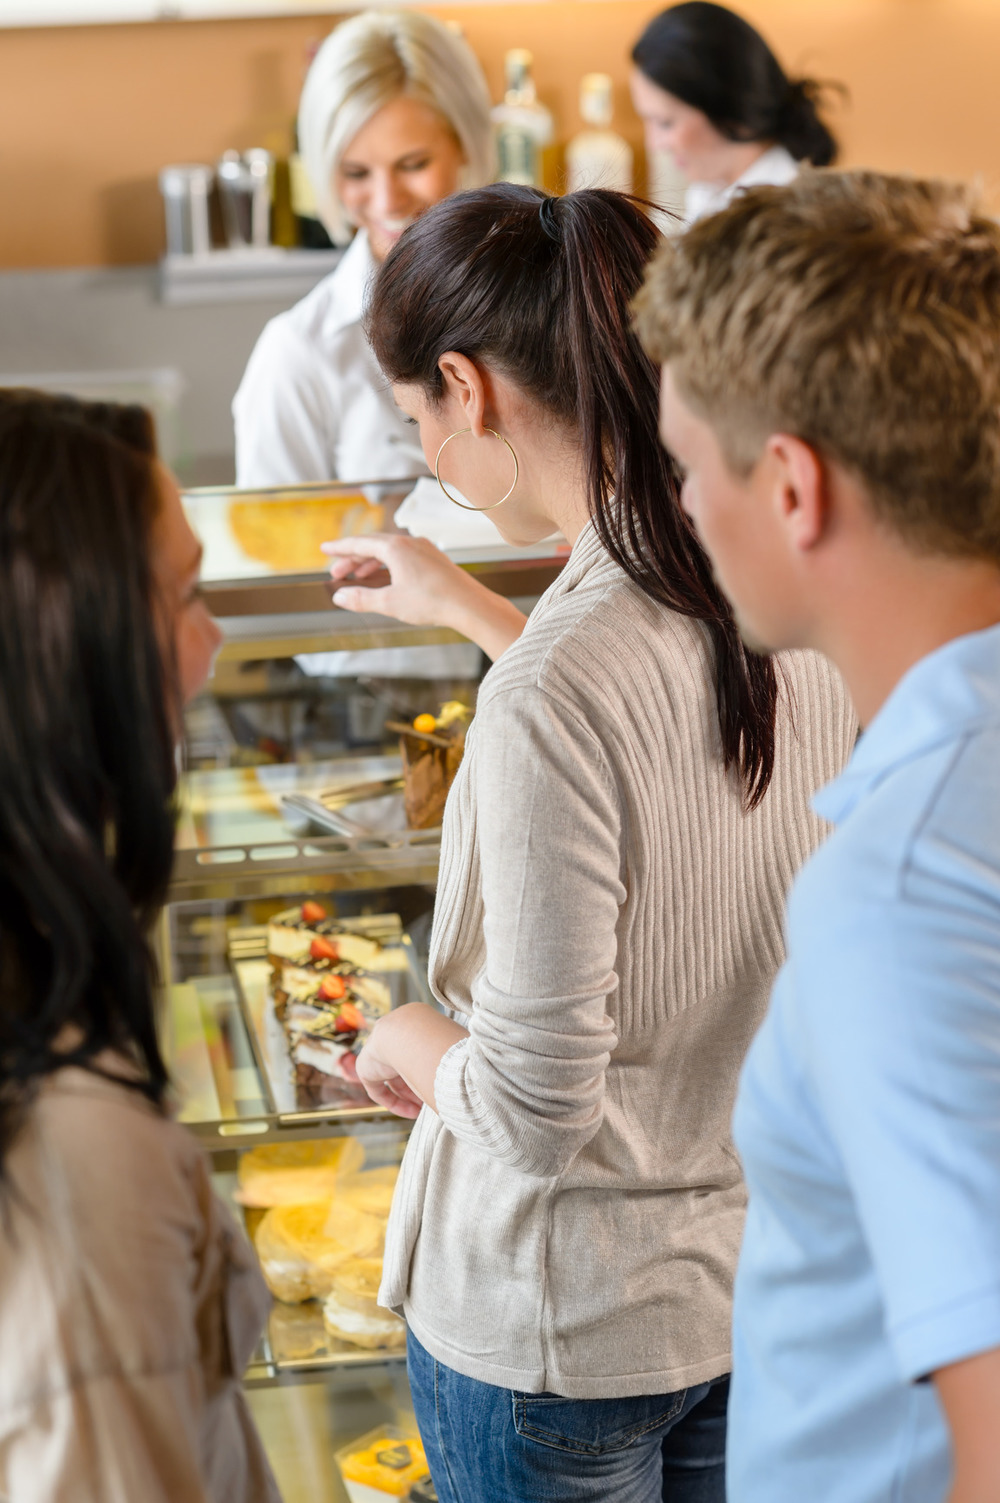 photodune-3161224-customers-waiting-in-line-to-buy-dessert-m.jpg